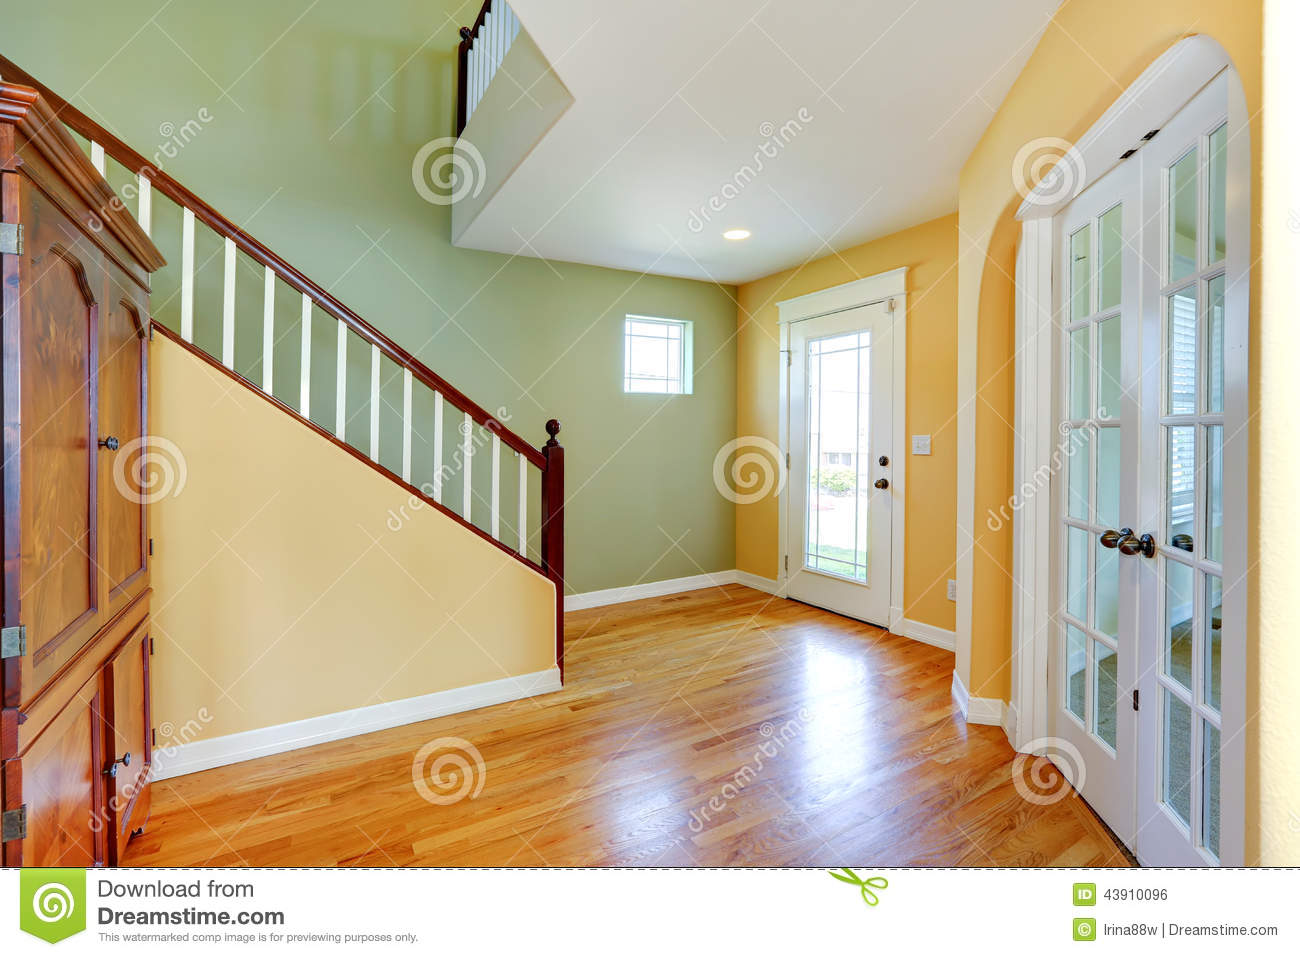 bright yellow and mint entrance hallway stock photo image 43910096. Black Bedroom Furniture Sets. Home Design Ideas